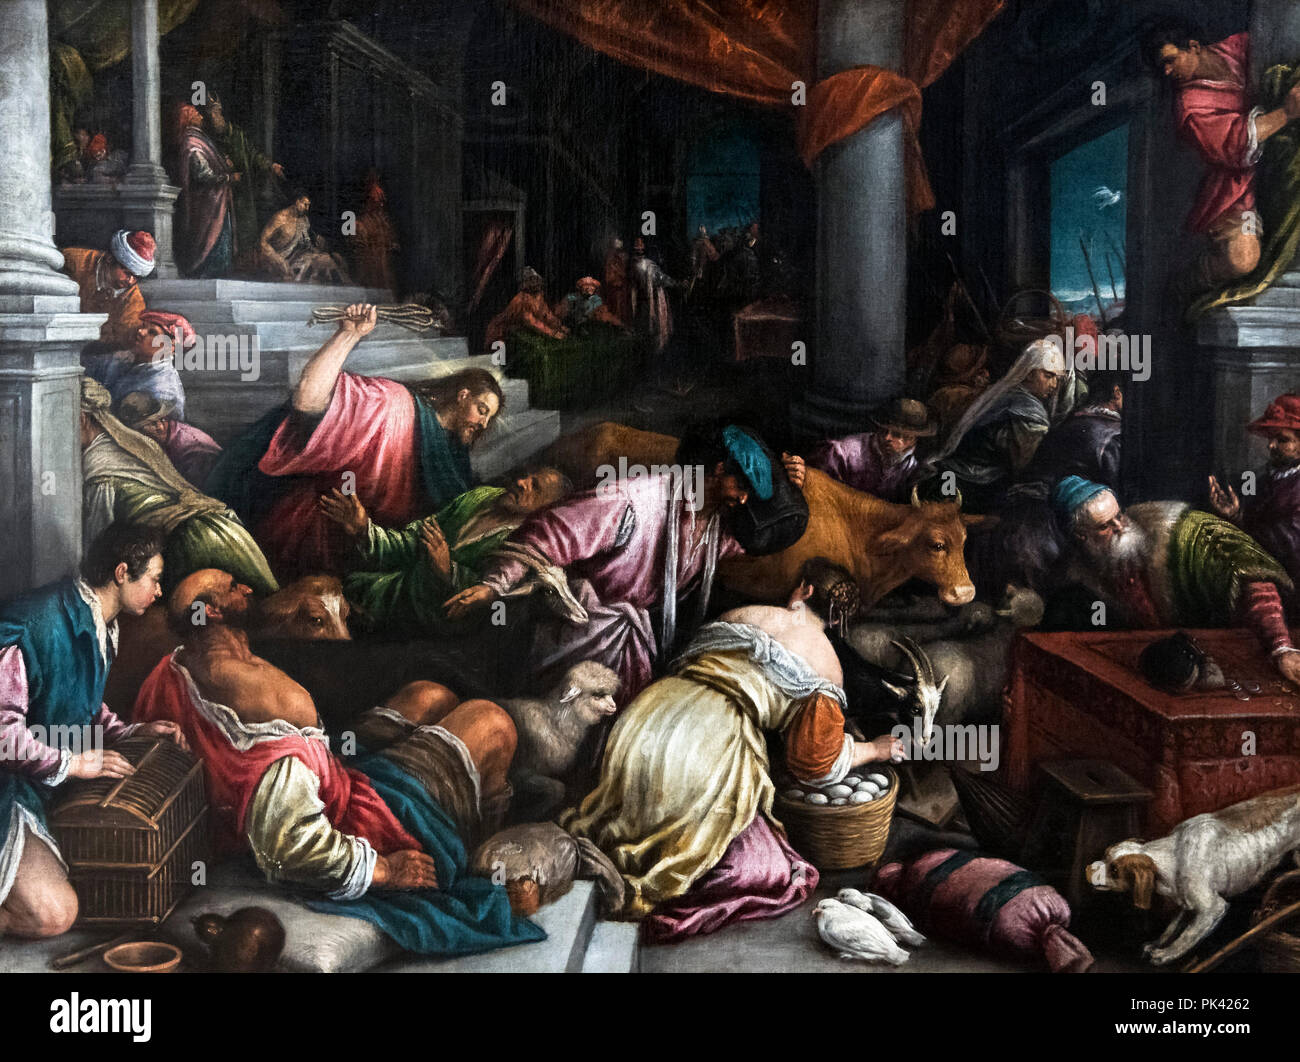 Christ Driving the Merchants from the Temple by Leandro Bassano (1557-1622), oil on canvas, c.1578 - Stock Image